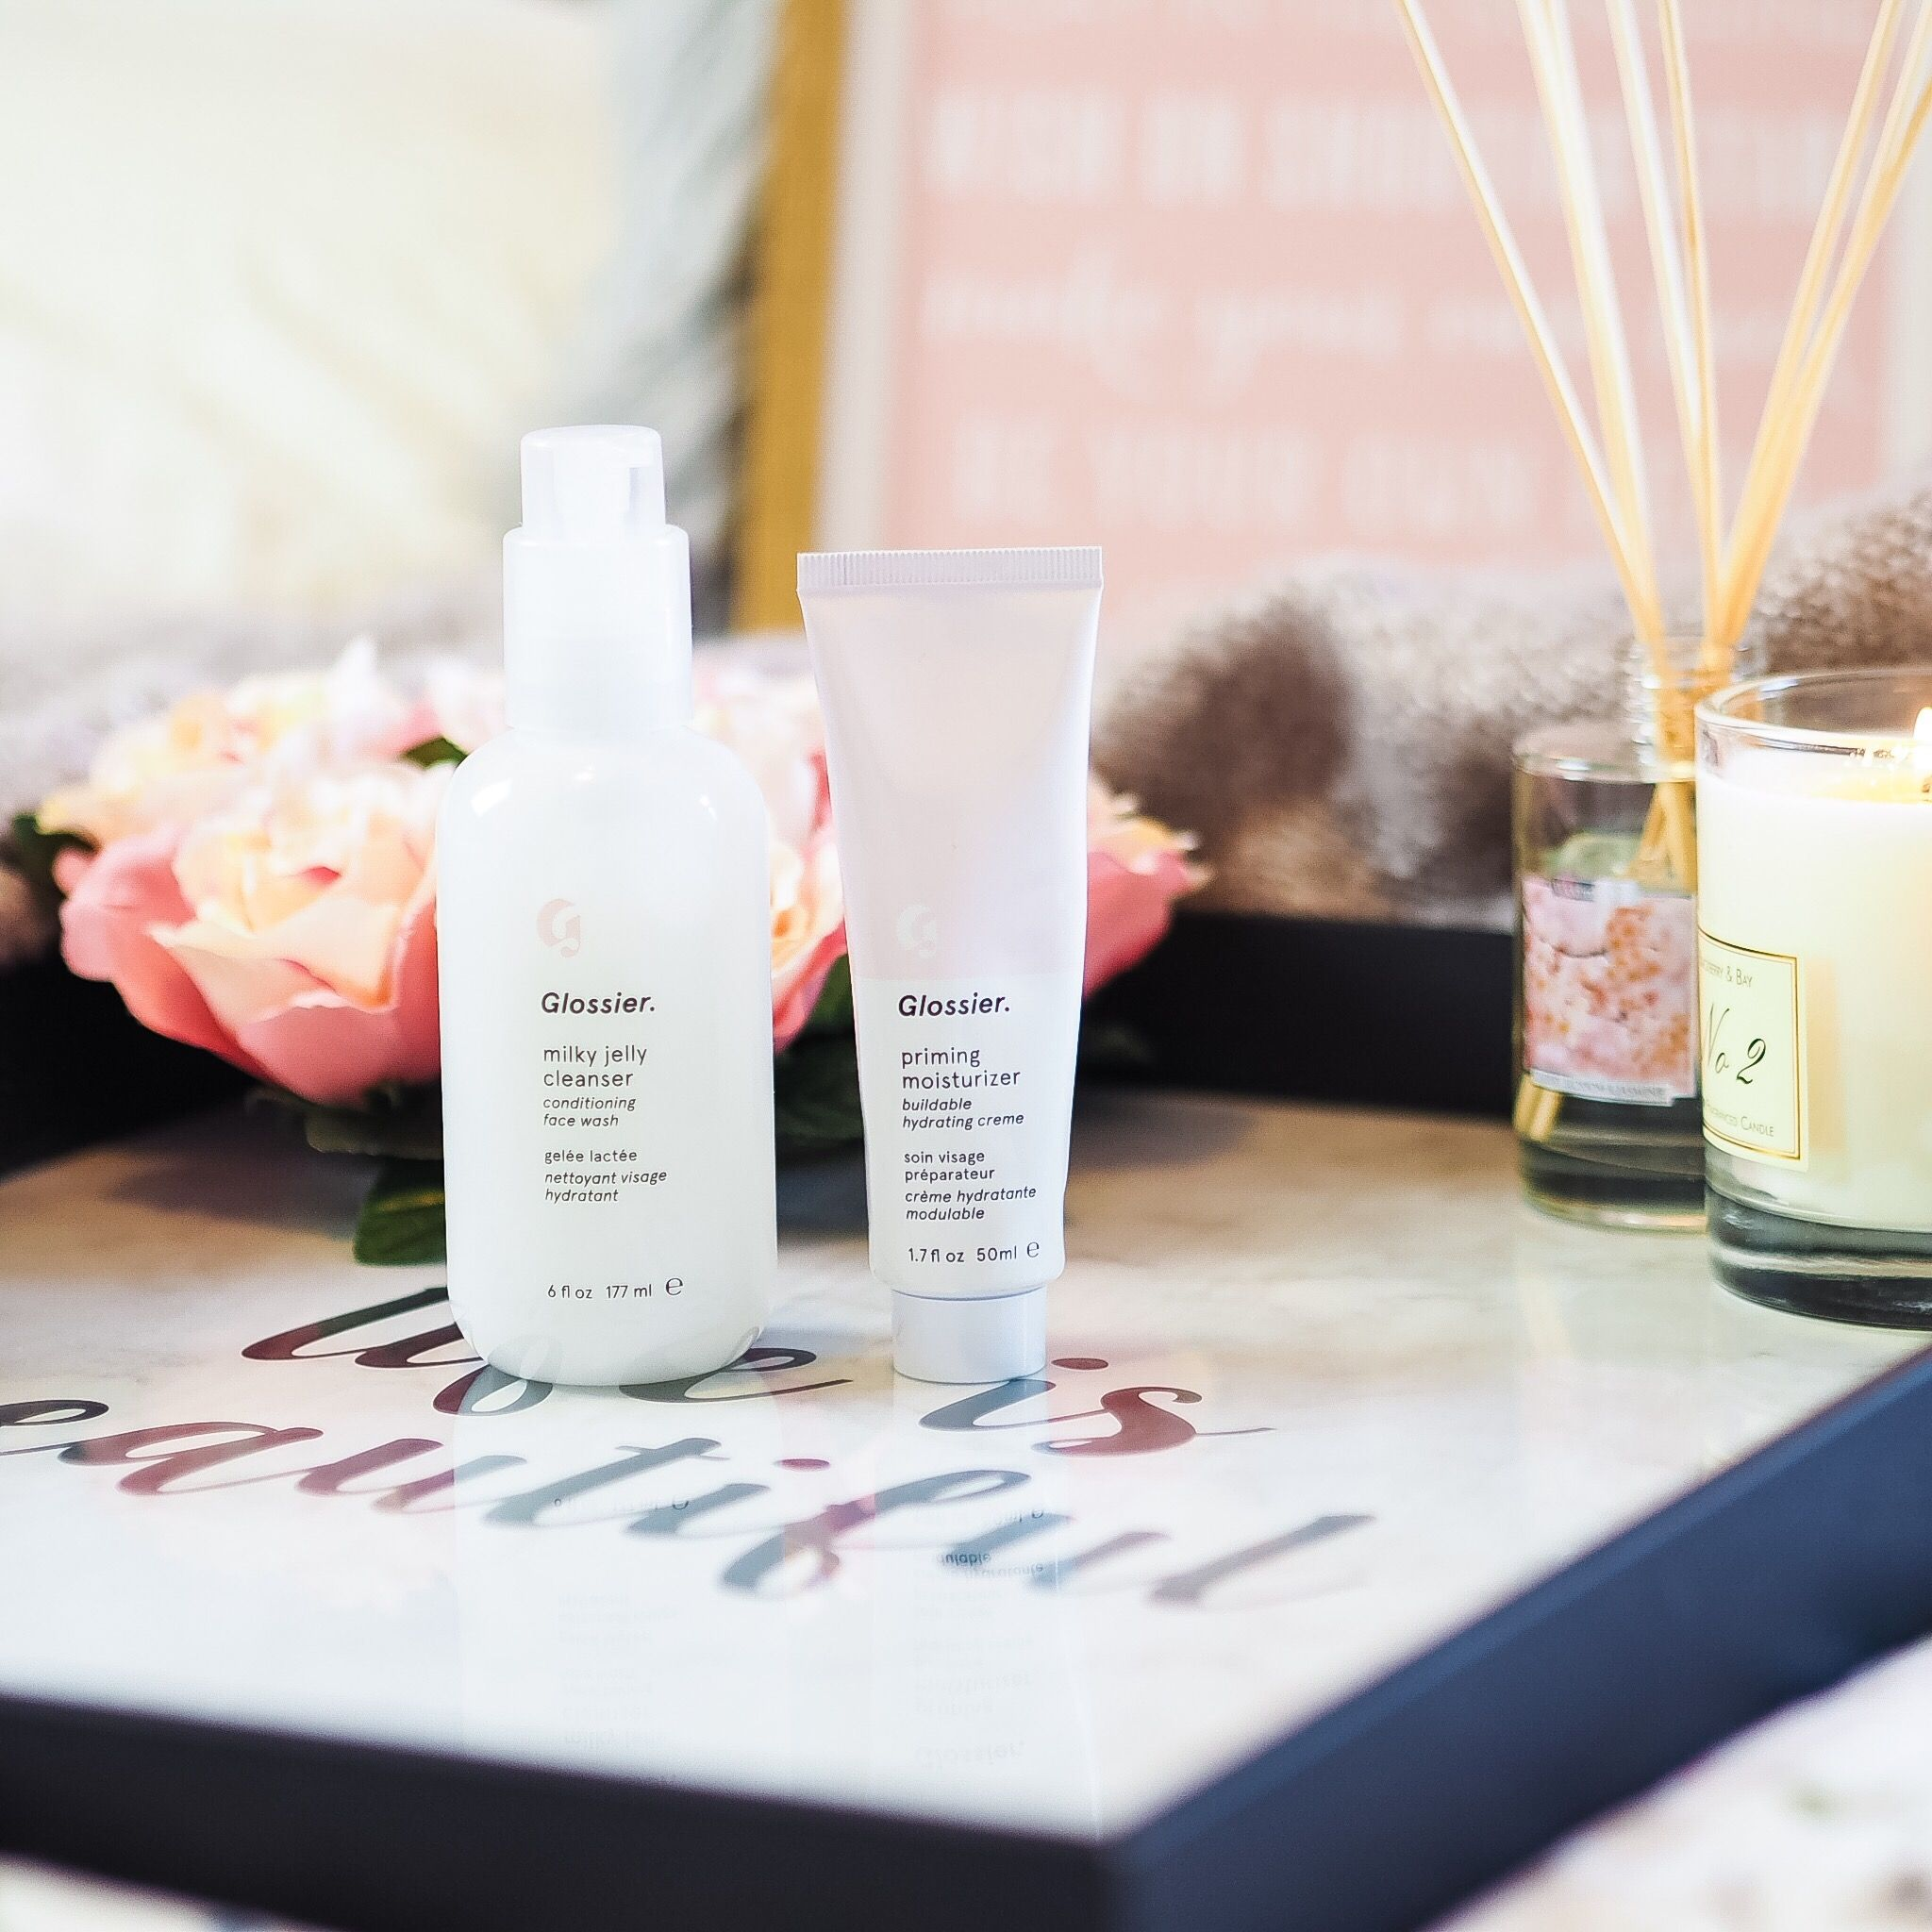 Glossier Worth The Hype? Find makeup, Glossier, Beauty